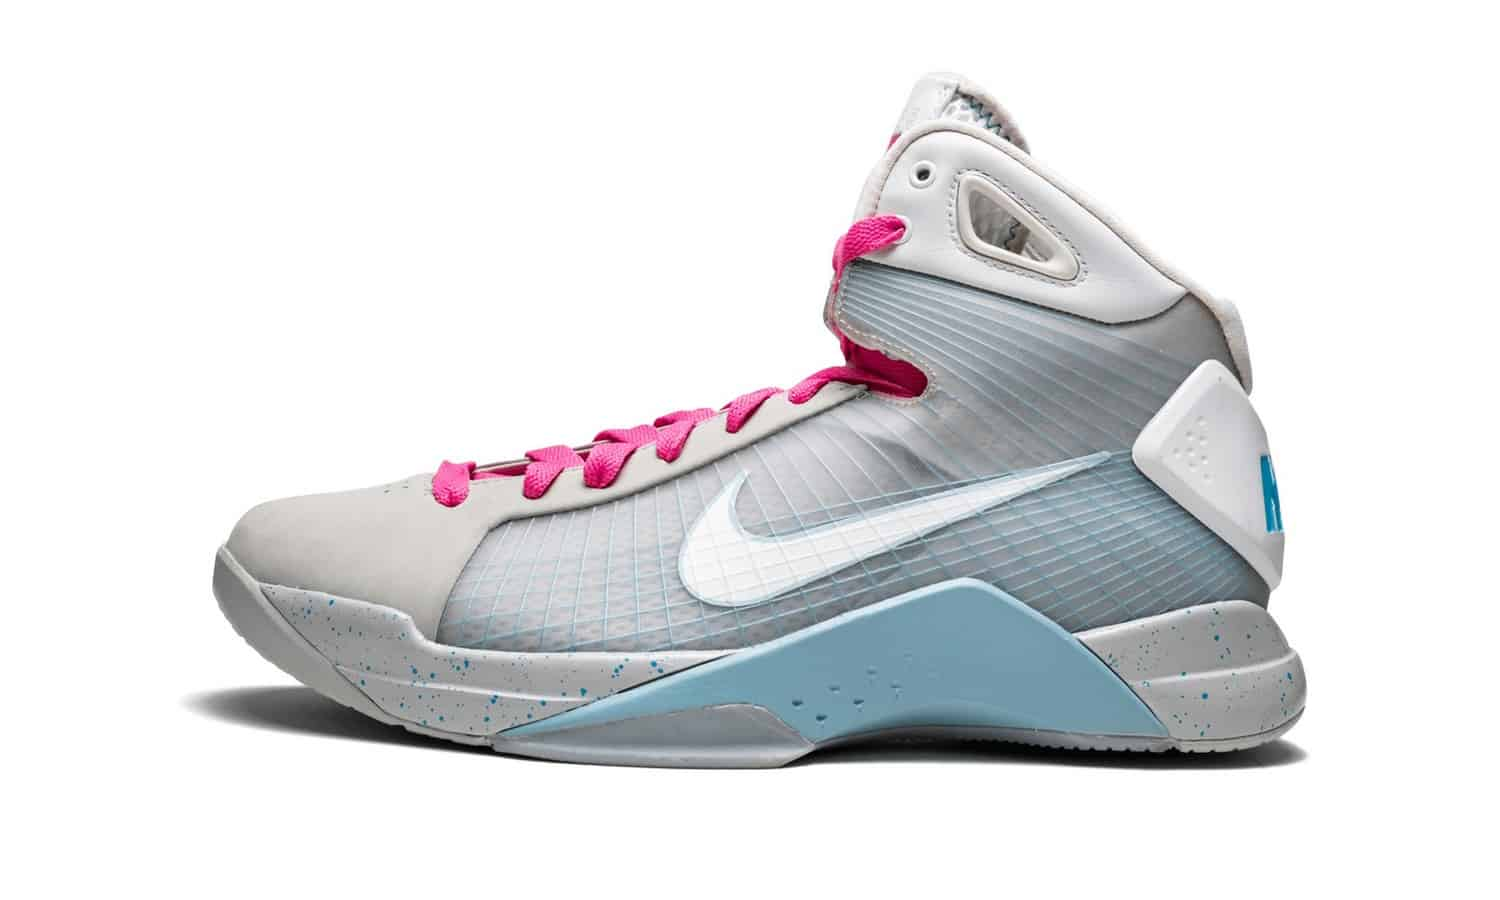 2007 Back to the Future Shoes